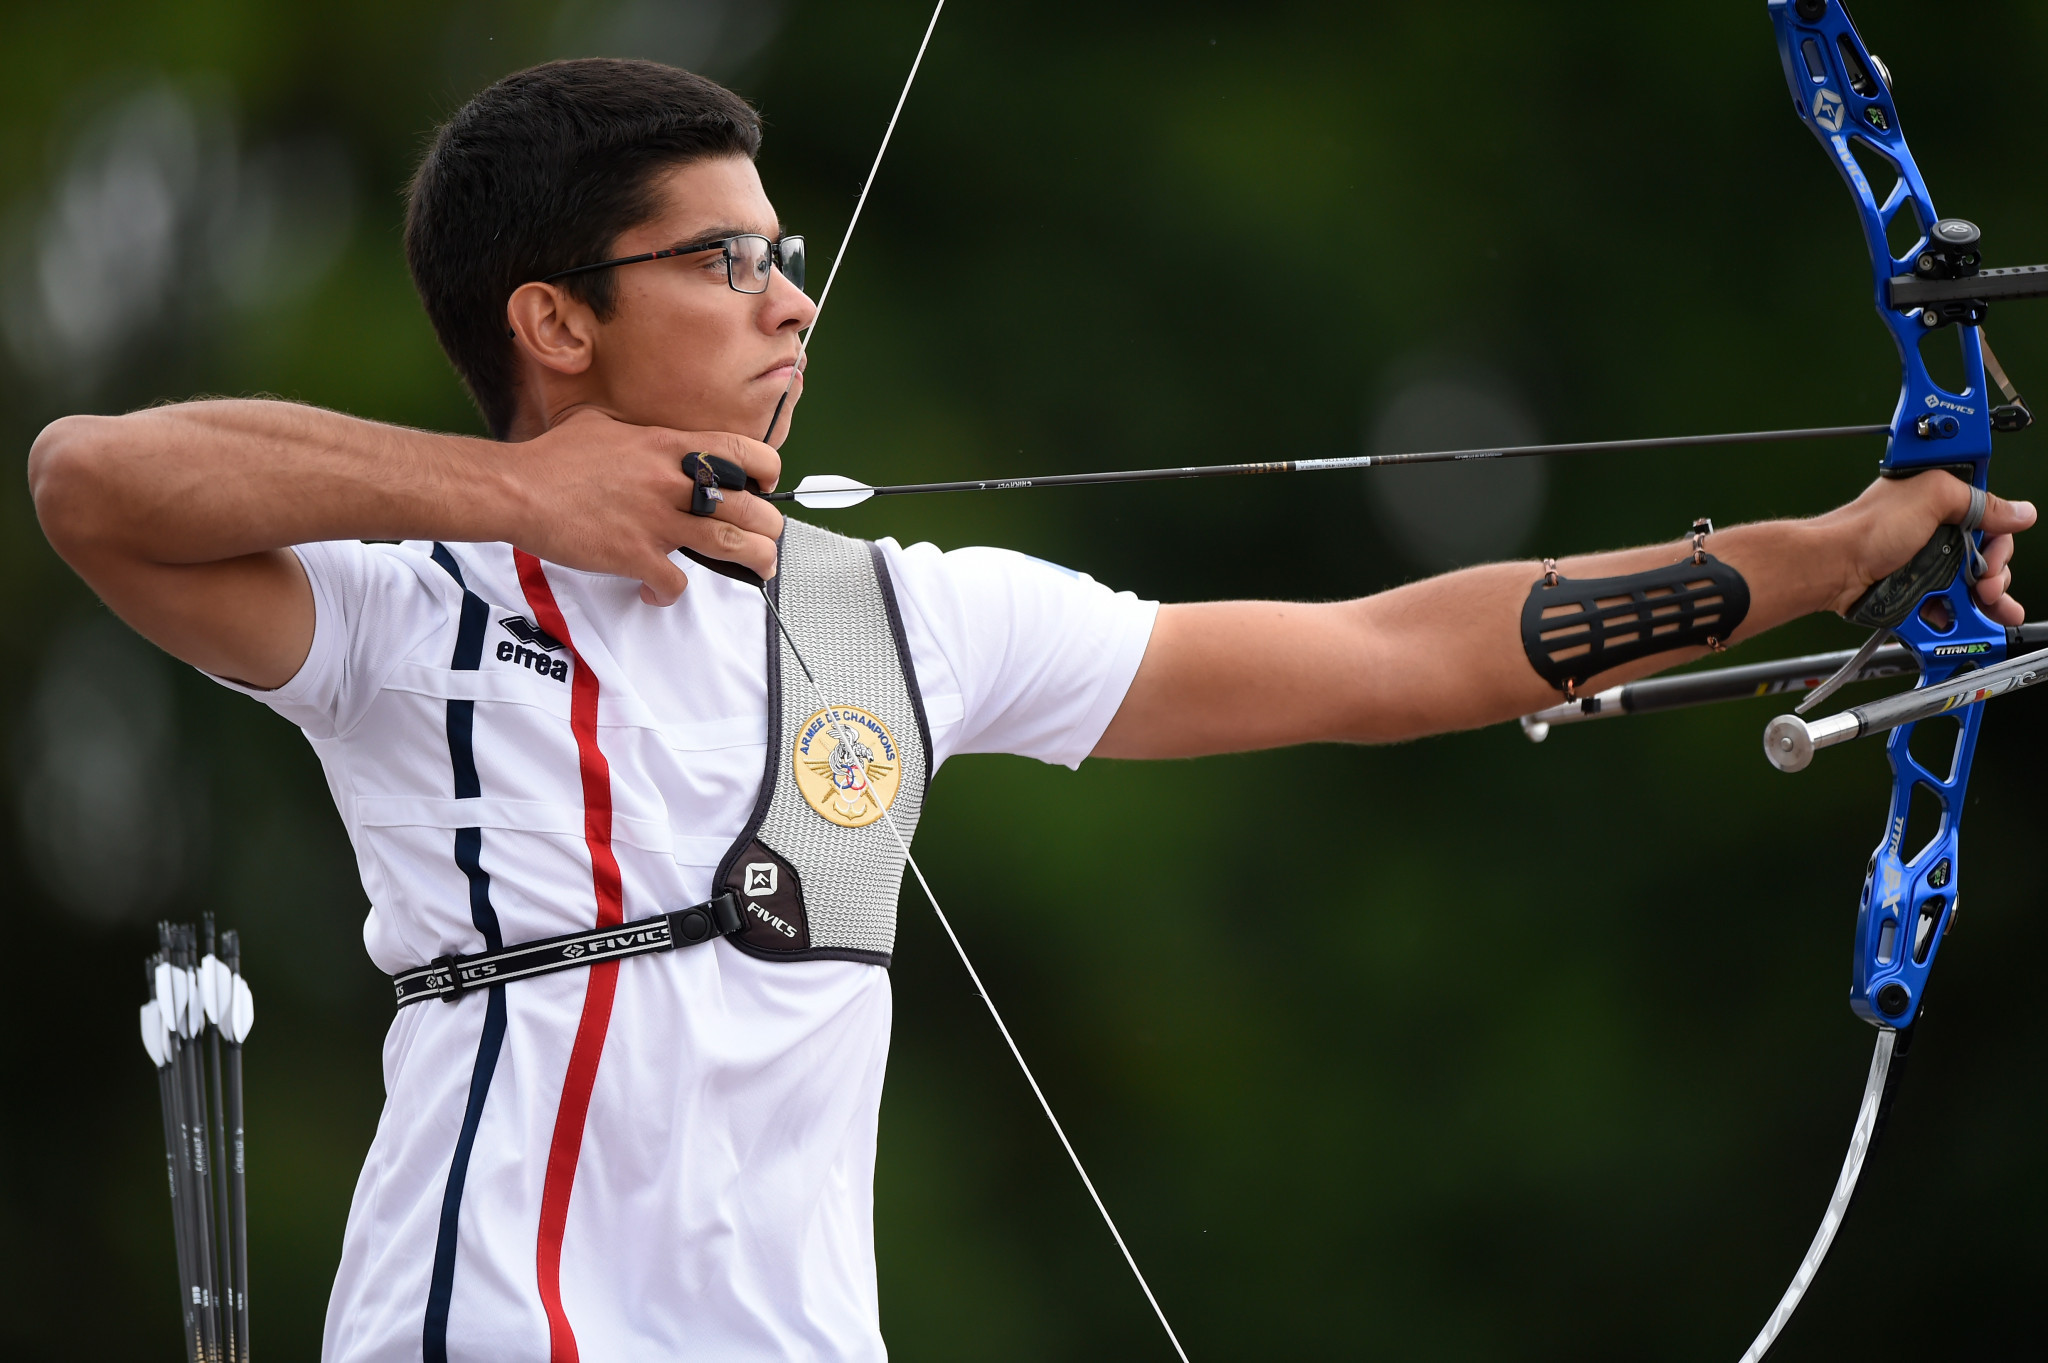 Hosts France among trio to book Tokyo 2020 places at final archery qualifier